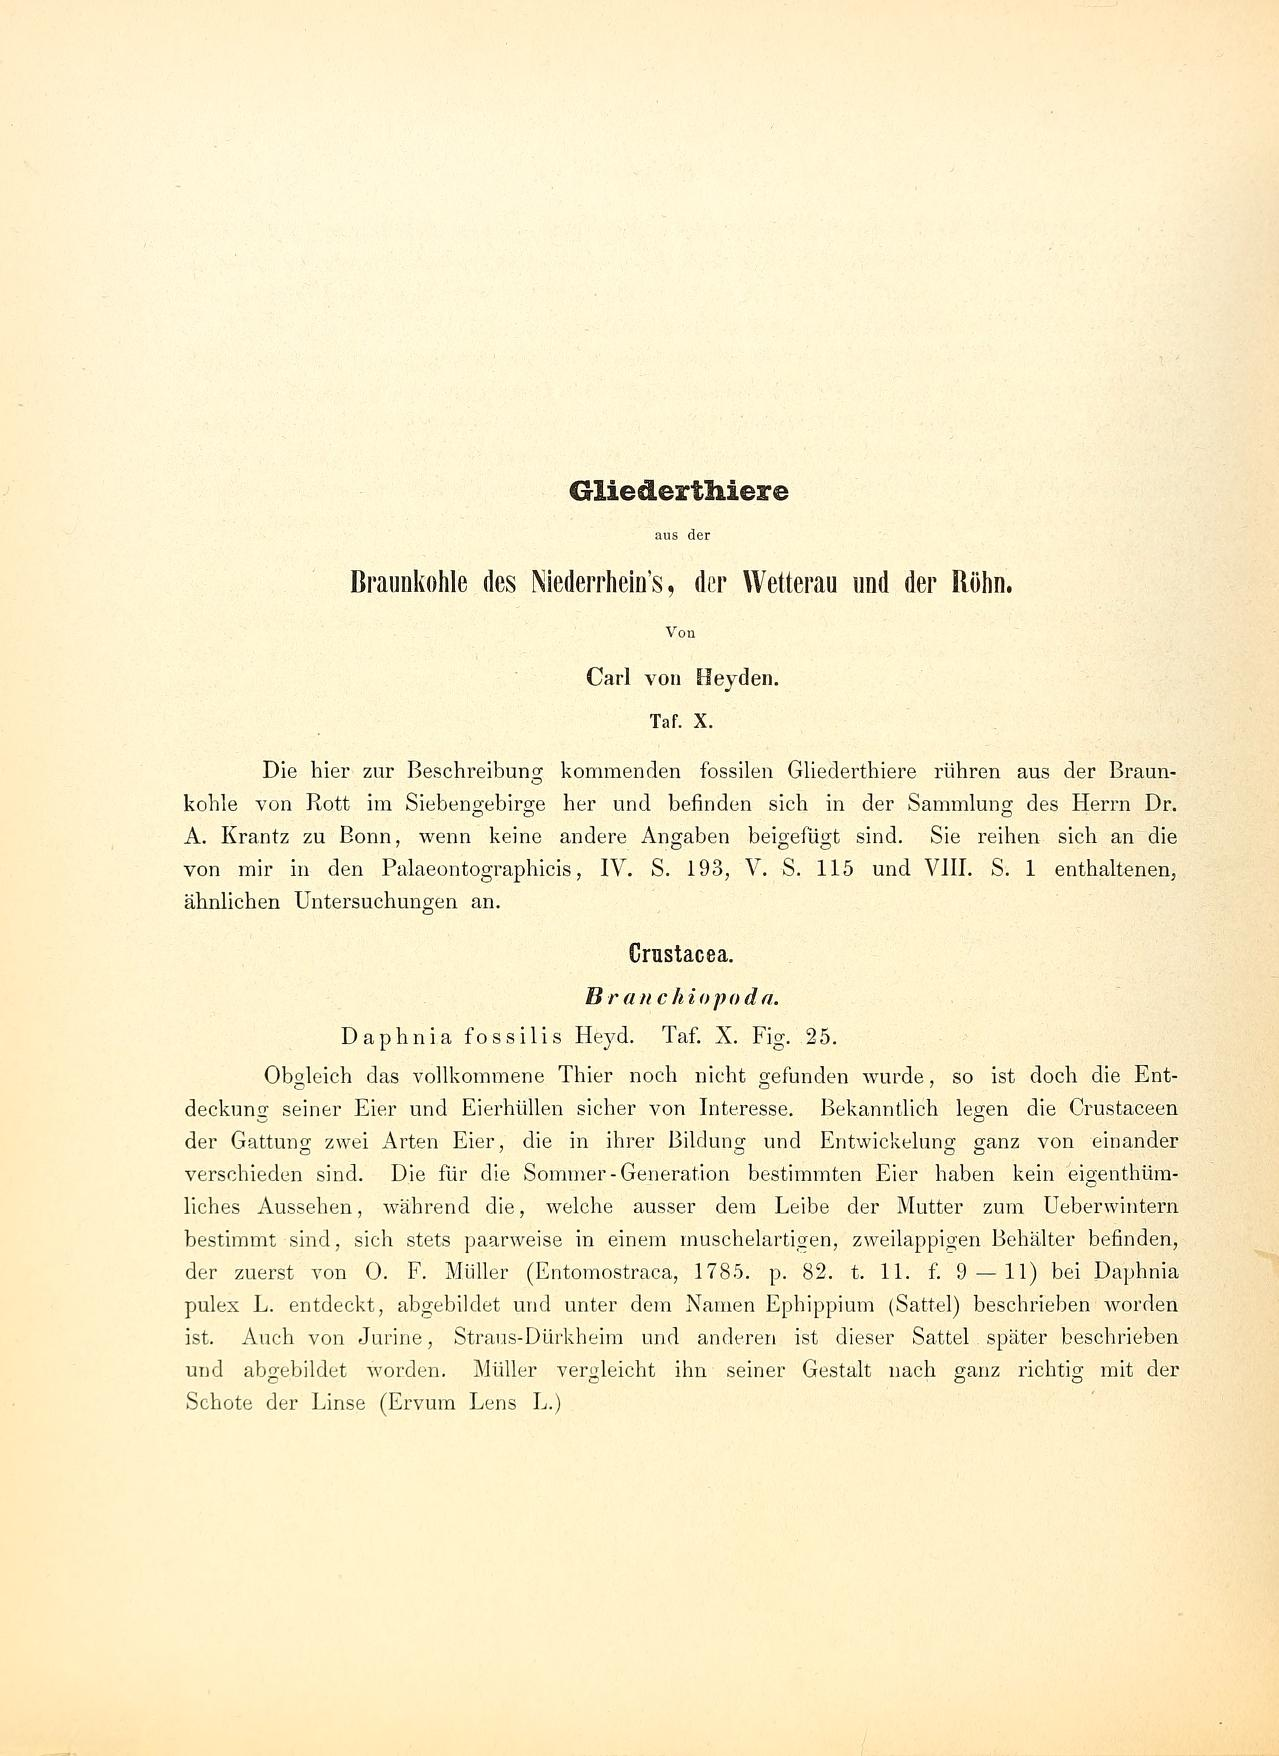 scanned journal article: BHL